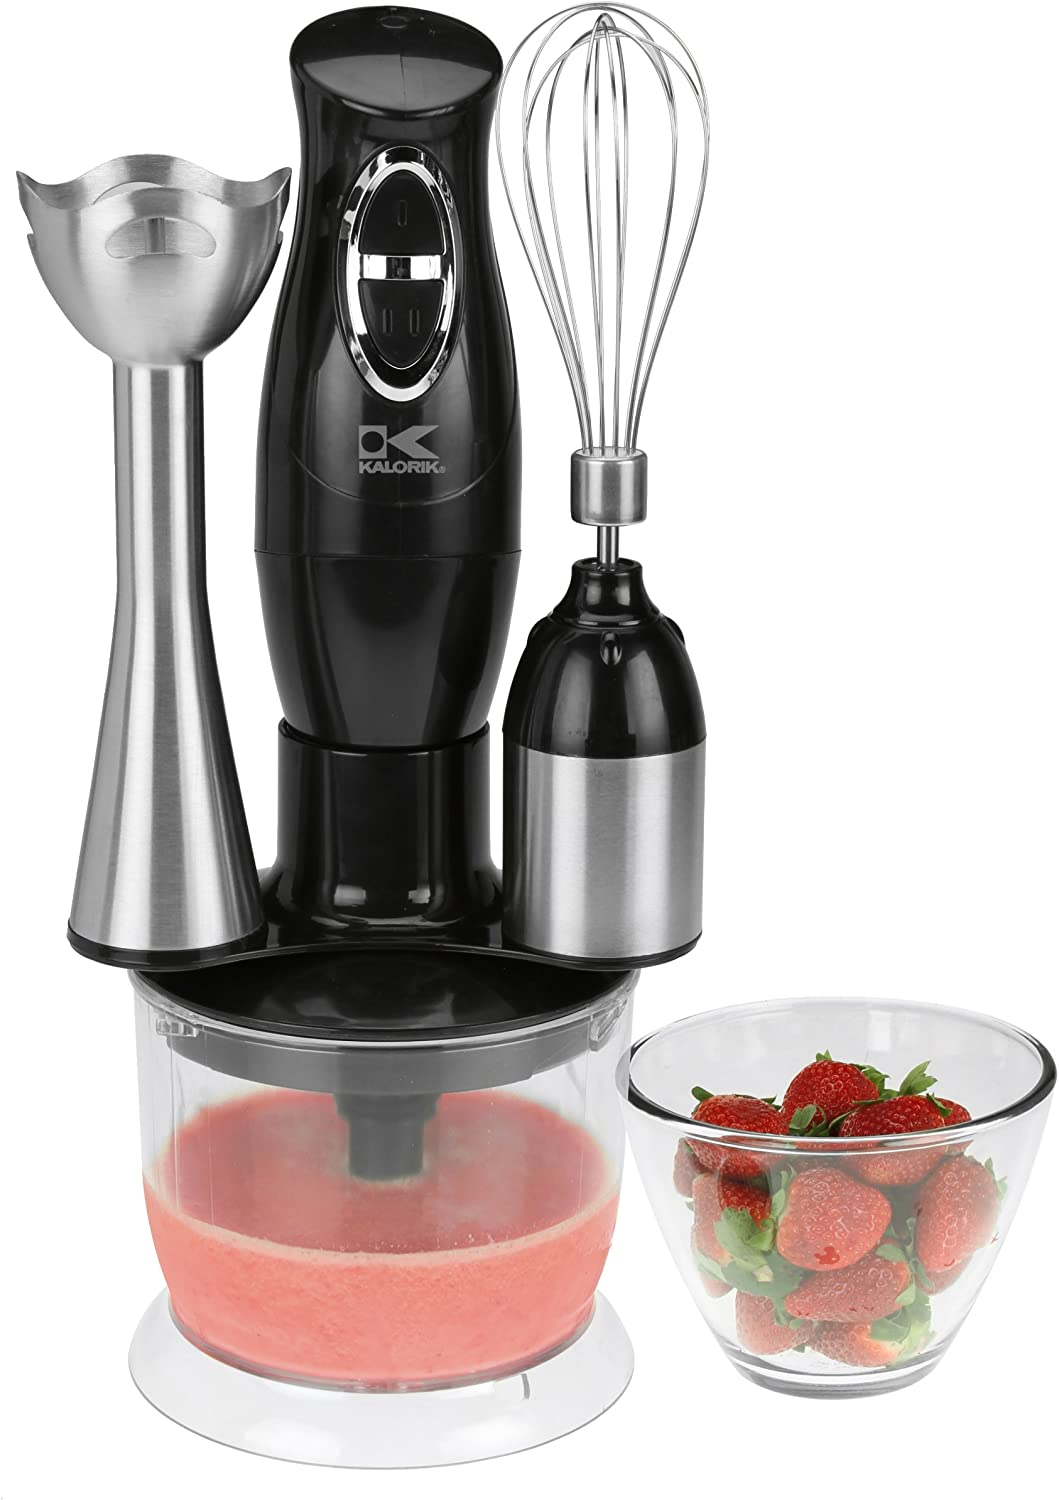 Kalorik Combination Mixer with Mixing Cup/Chopper and Whisk, Black